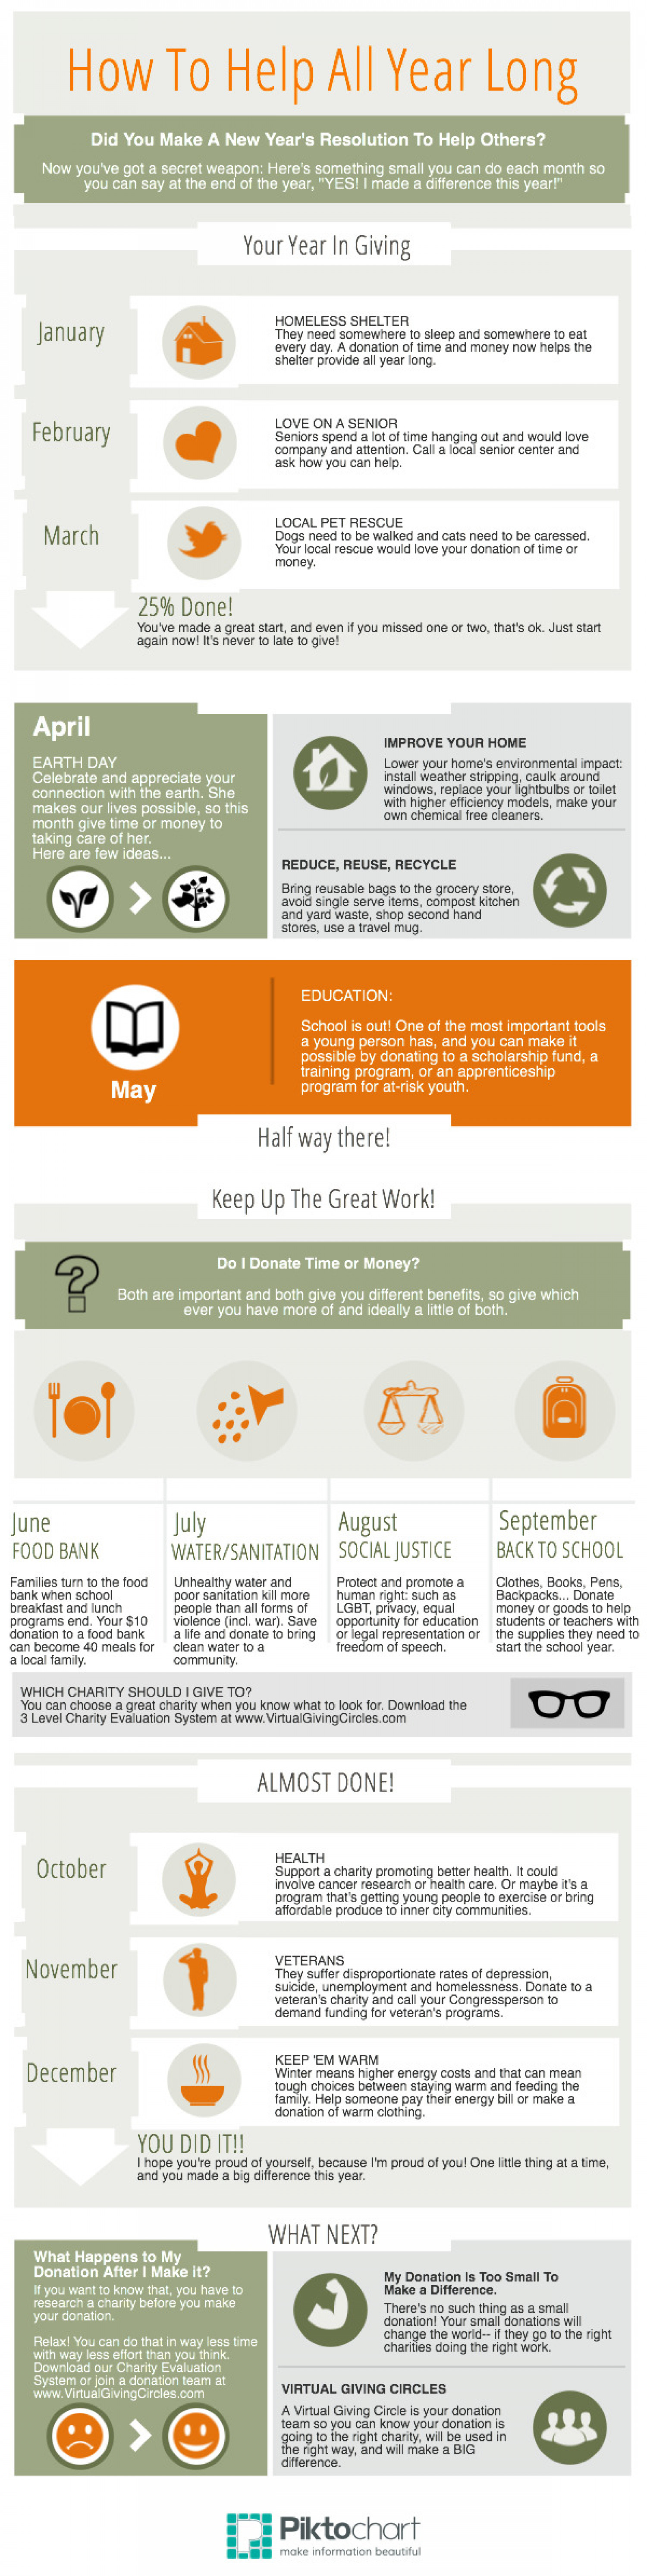 How To Help All Year Long Infographic